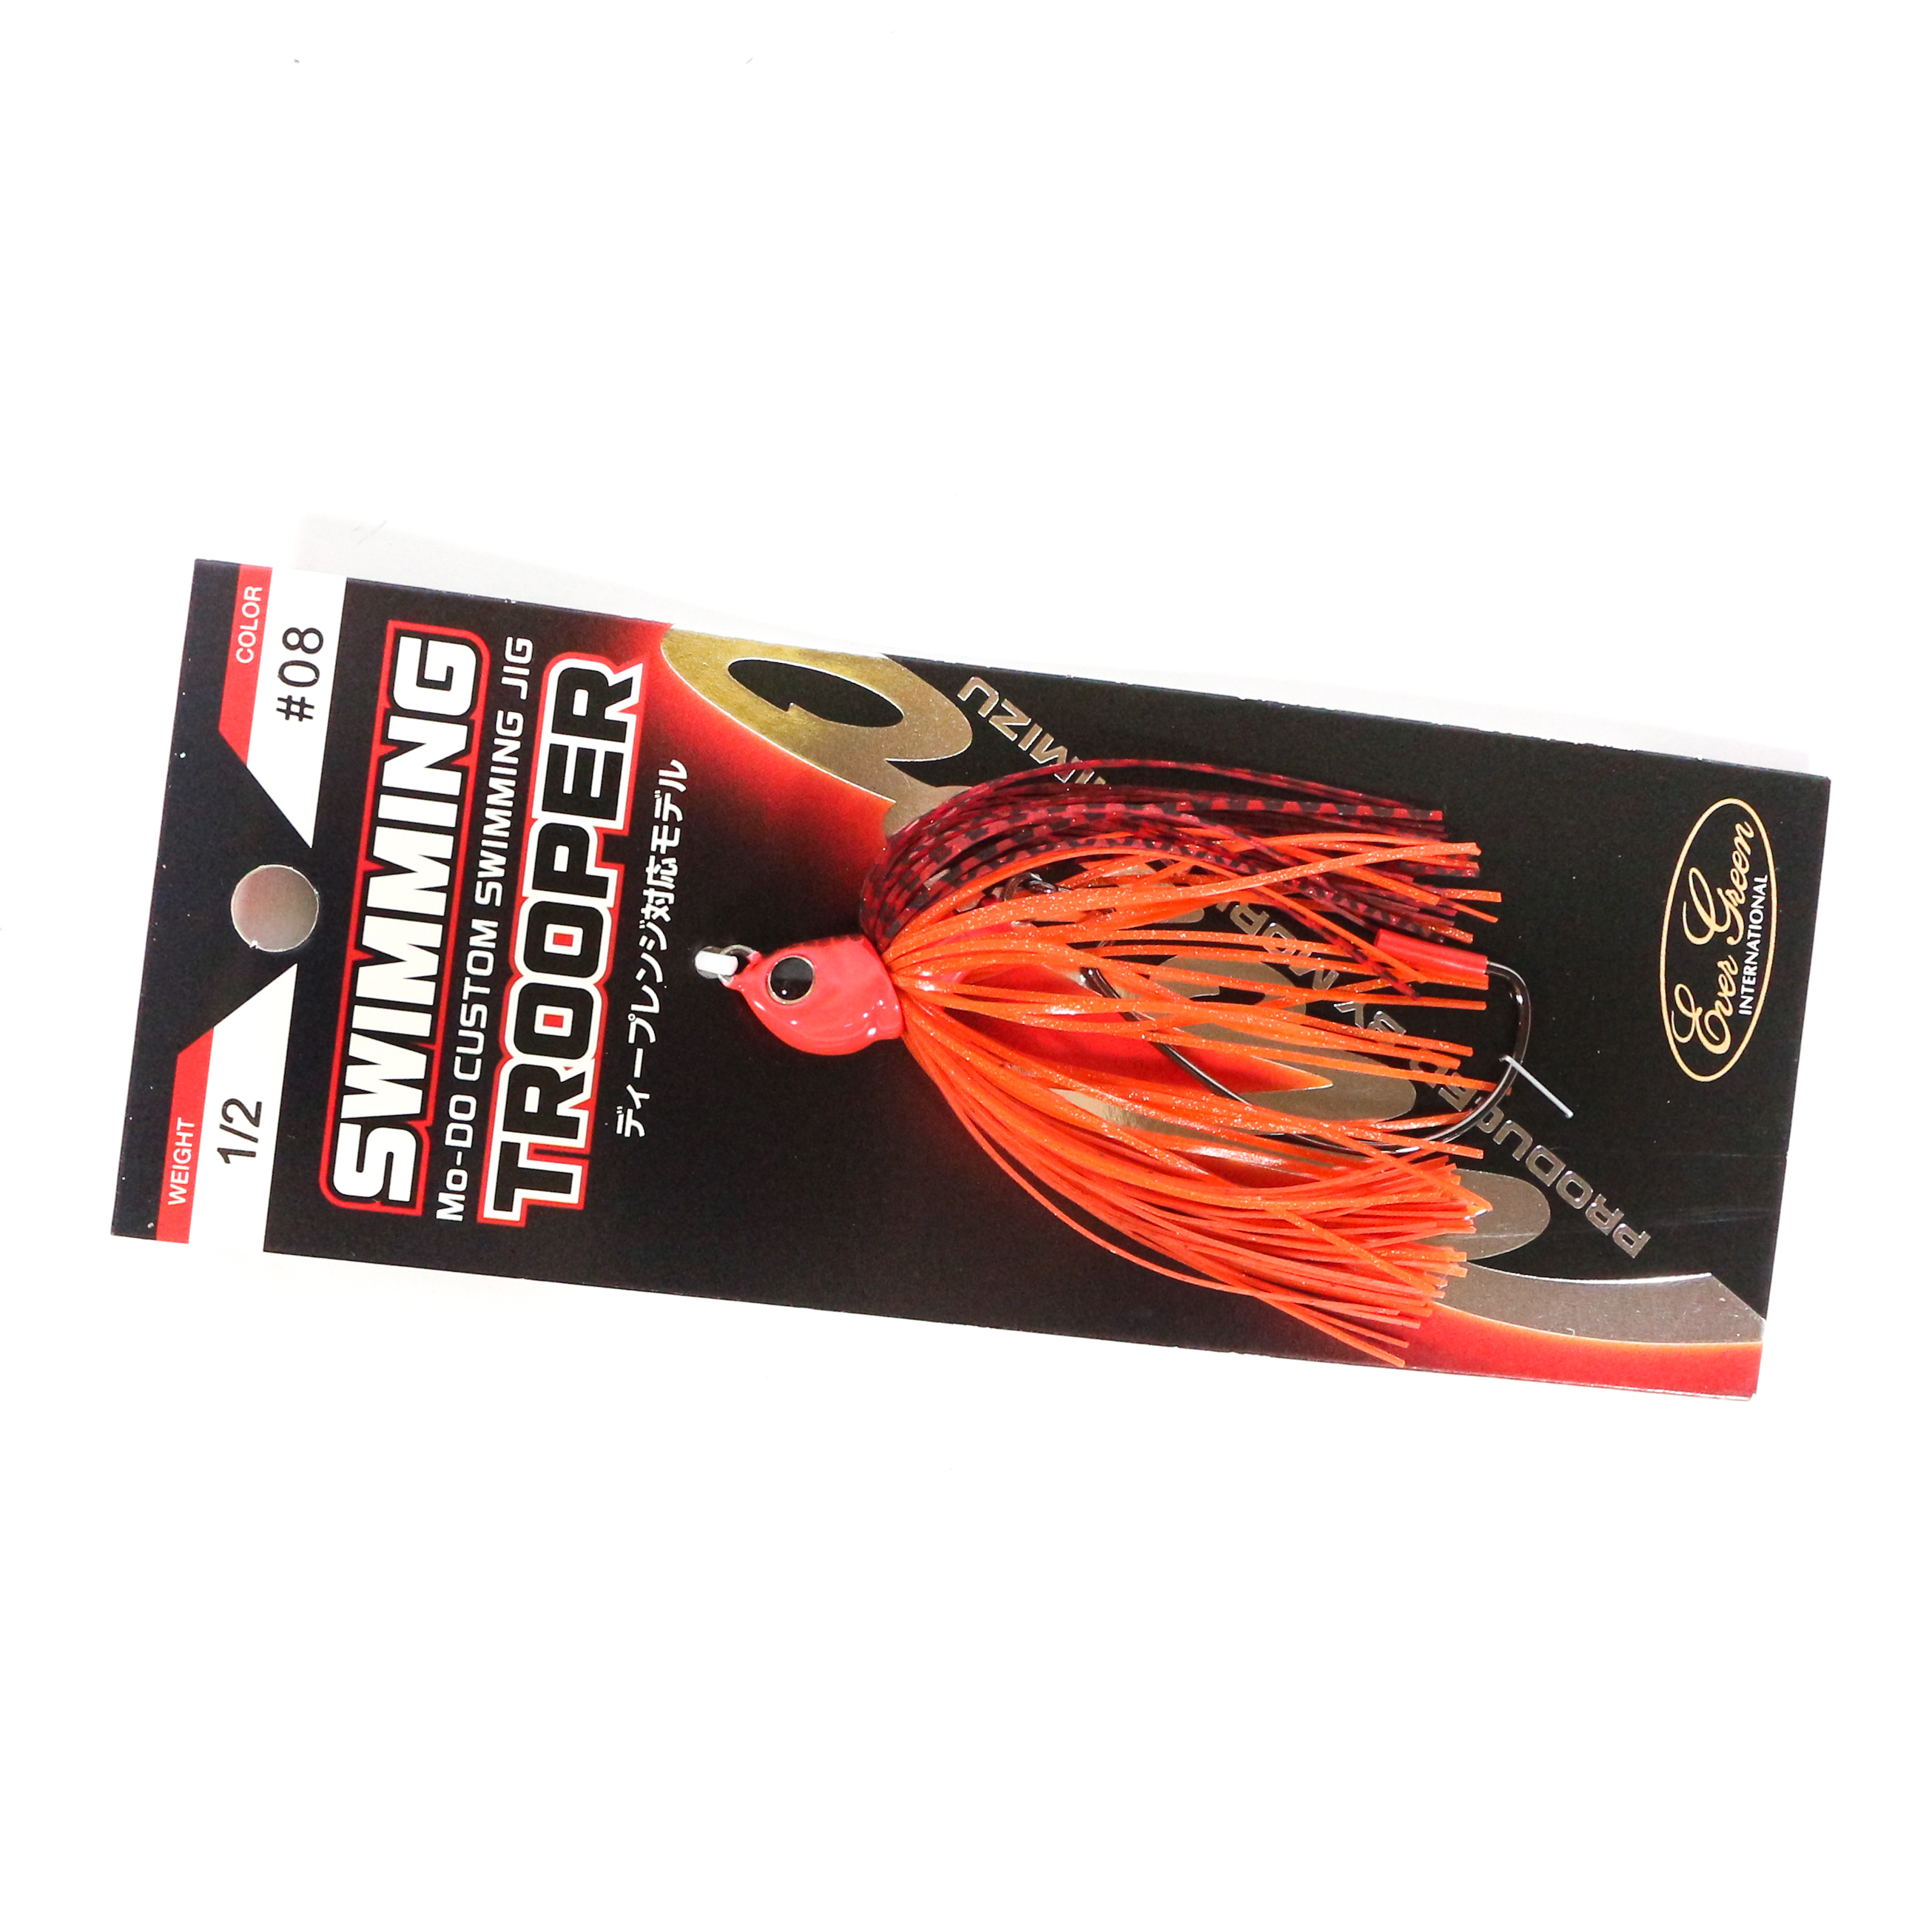 Evergreen Swimming Trooper Rubber Jig 1/2 oz Sinking Lure 08 (0133)